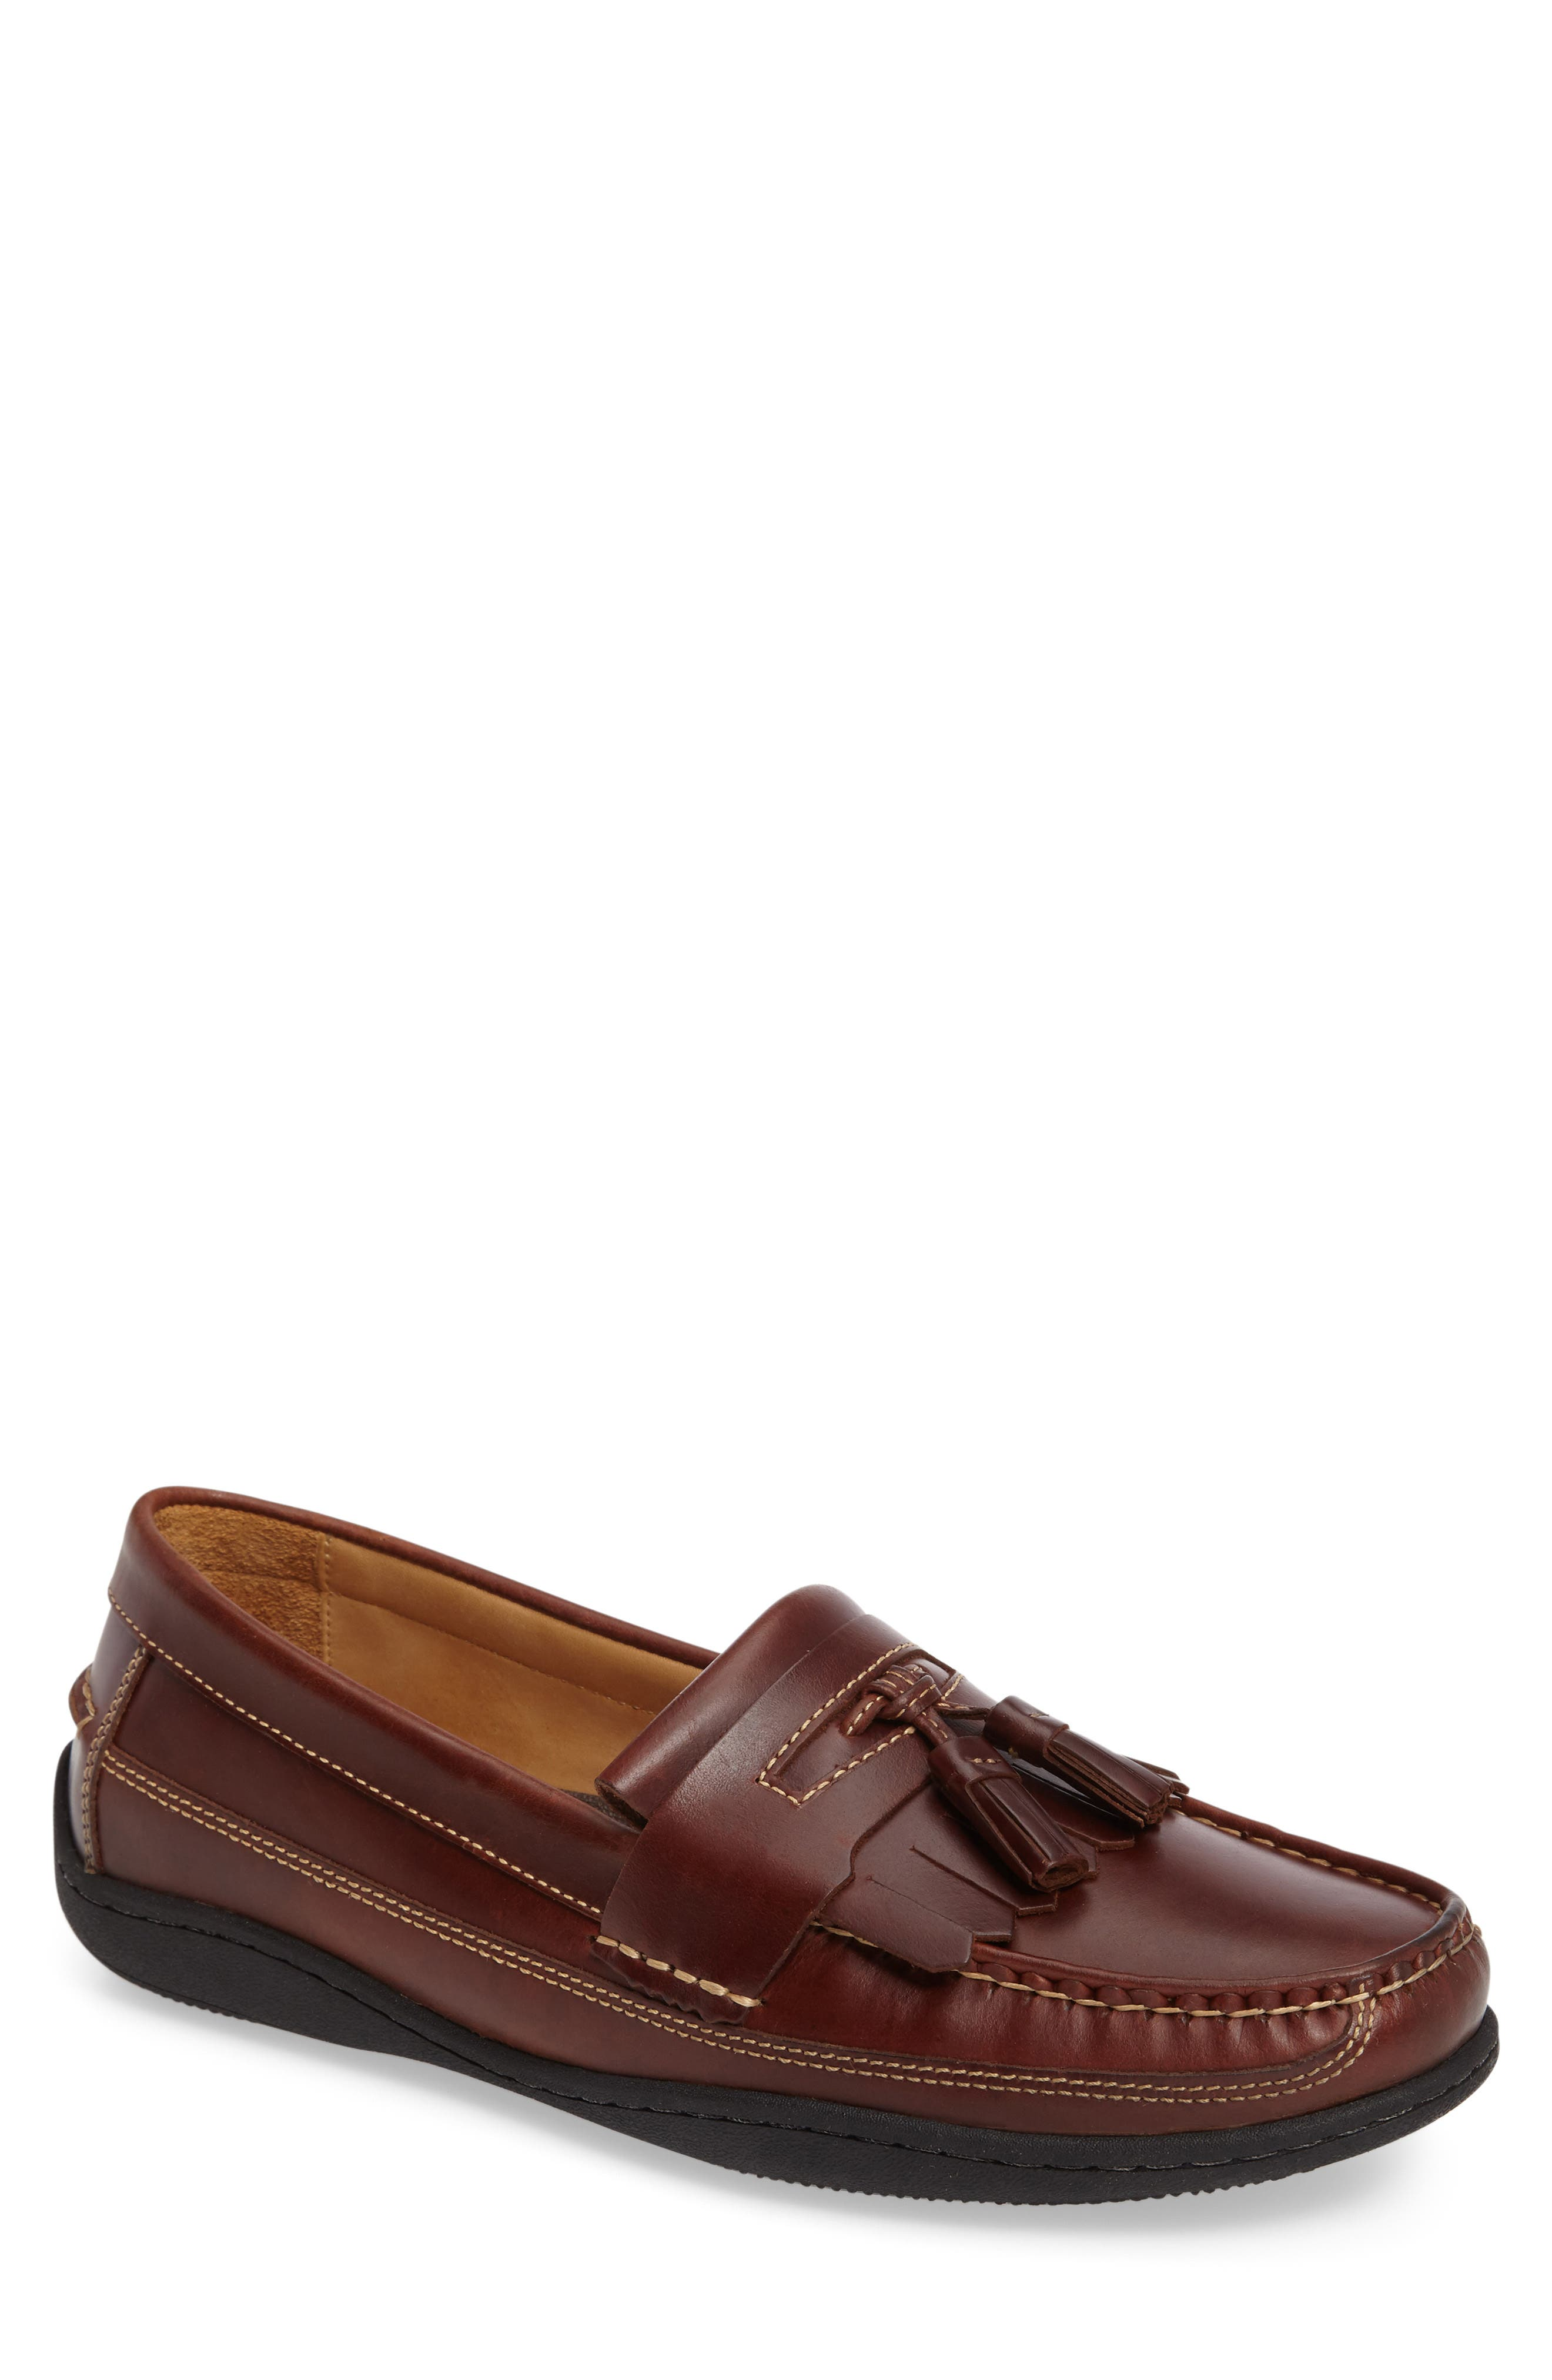 Fowler Kiltie Tassel Loafer,                         Main,                         color, Mahogany Leather